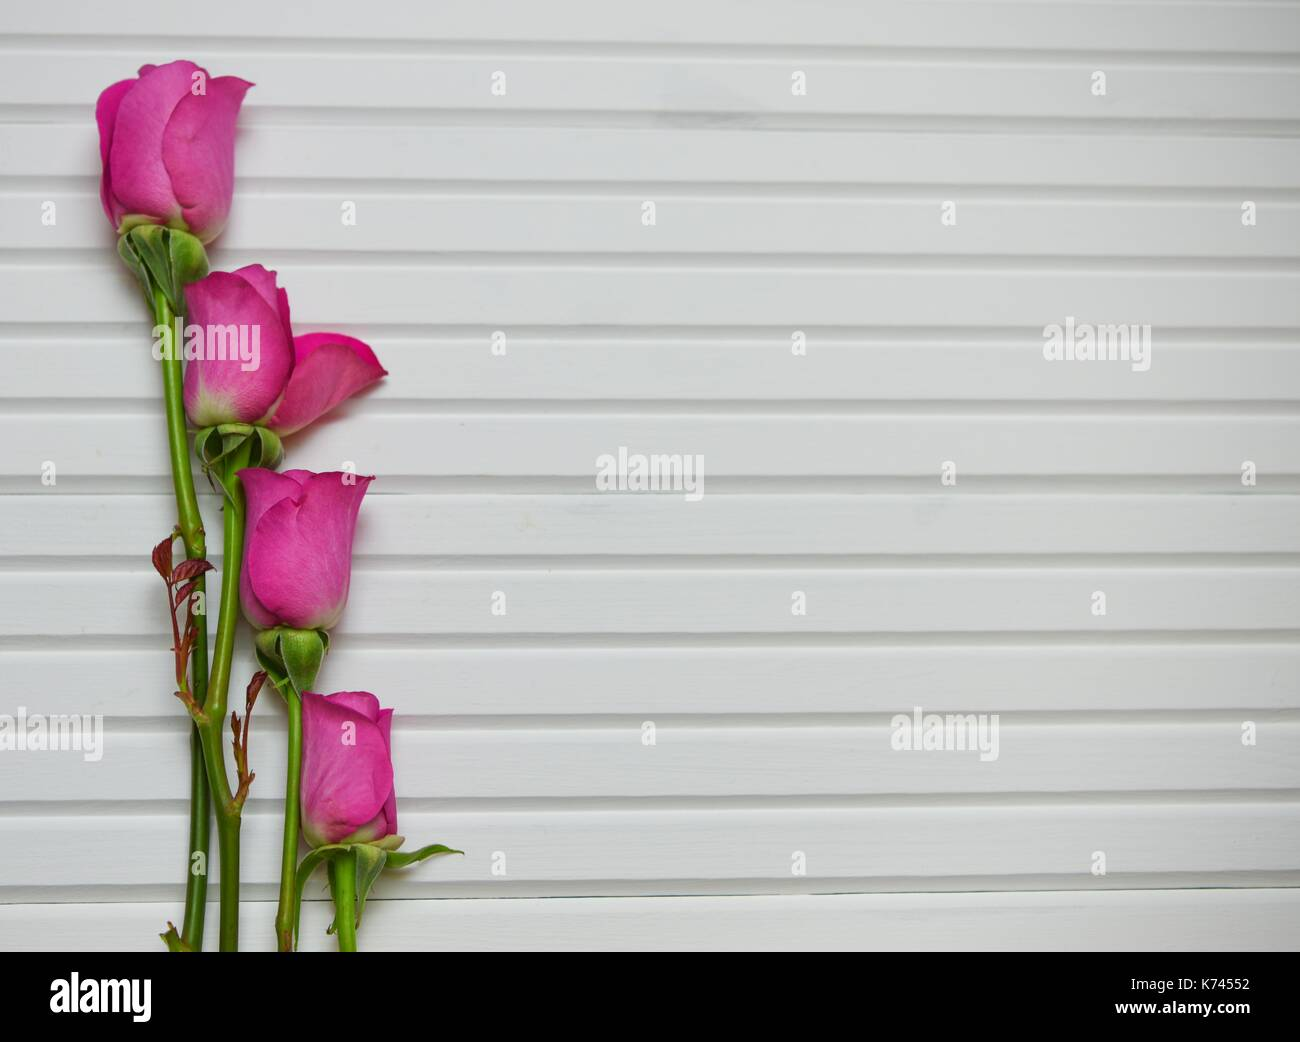 valentine romantic flower photography image of four bright pink roses  on white wood panel background with green leaves and stems and space - Stock Image